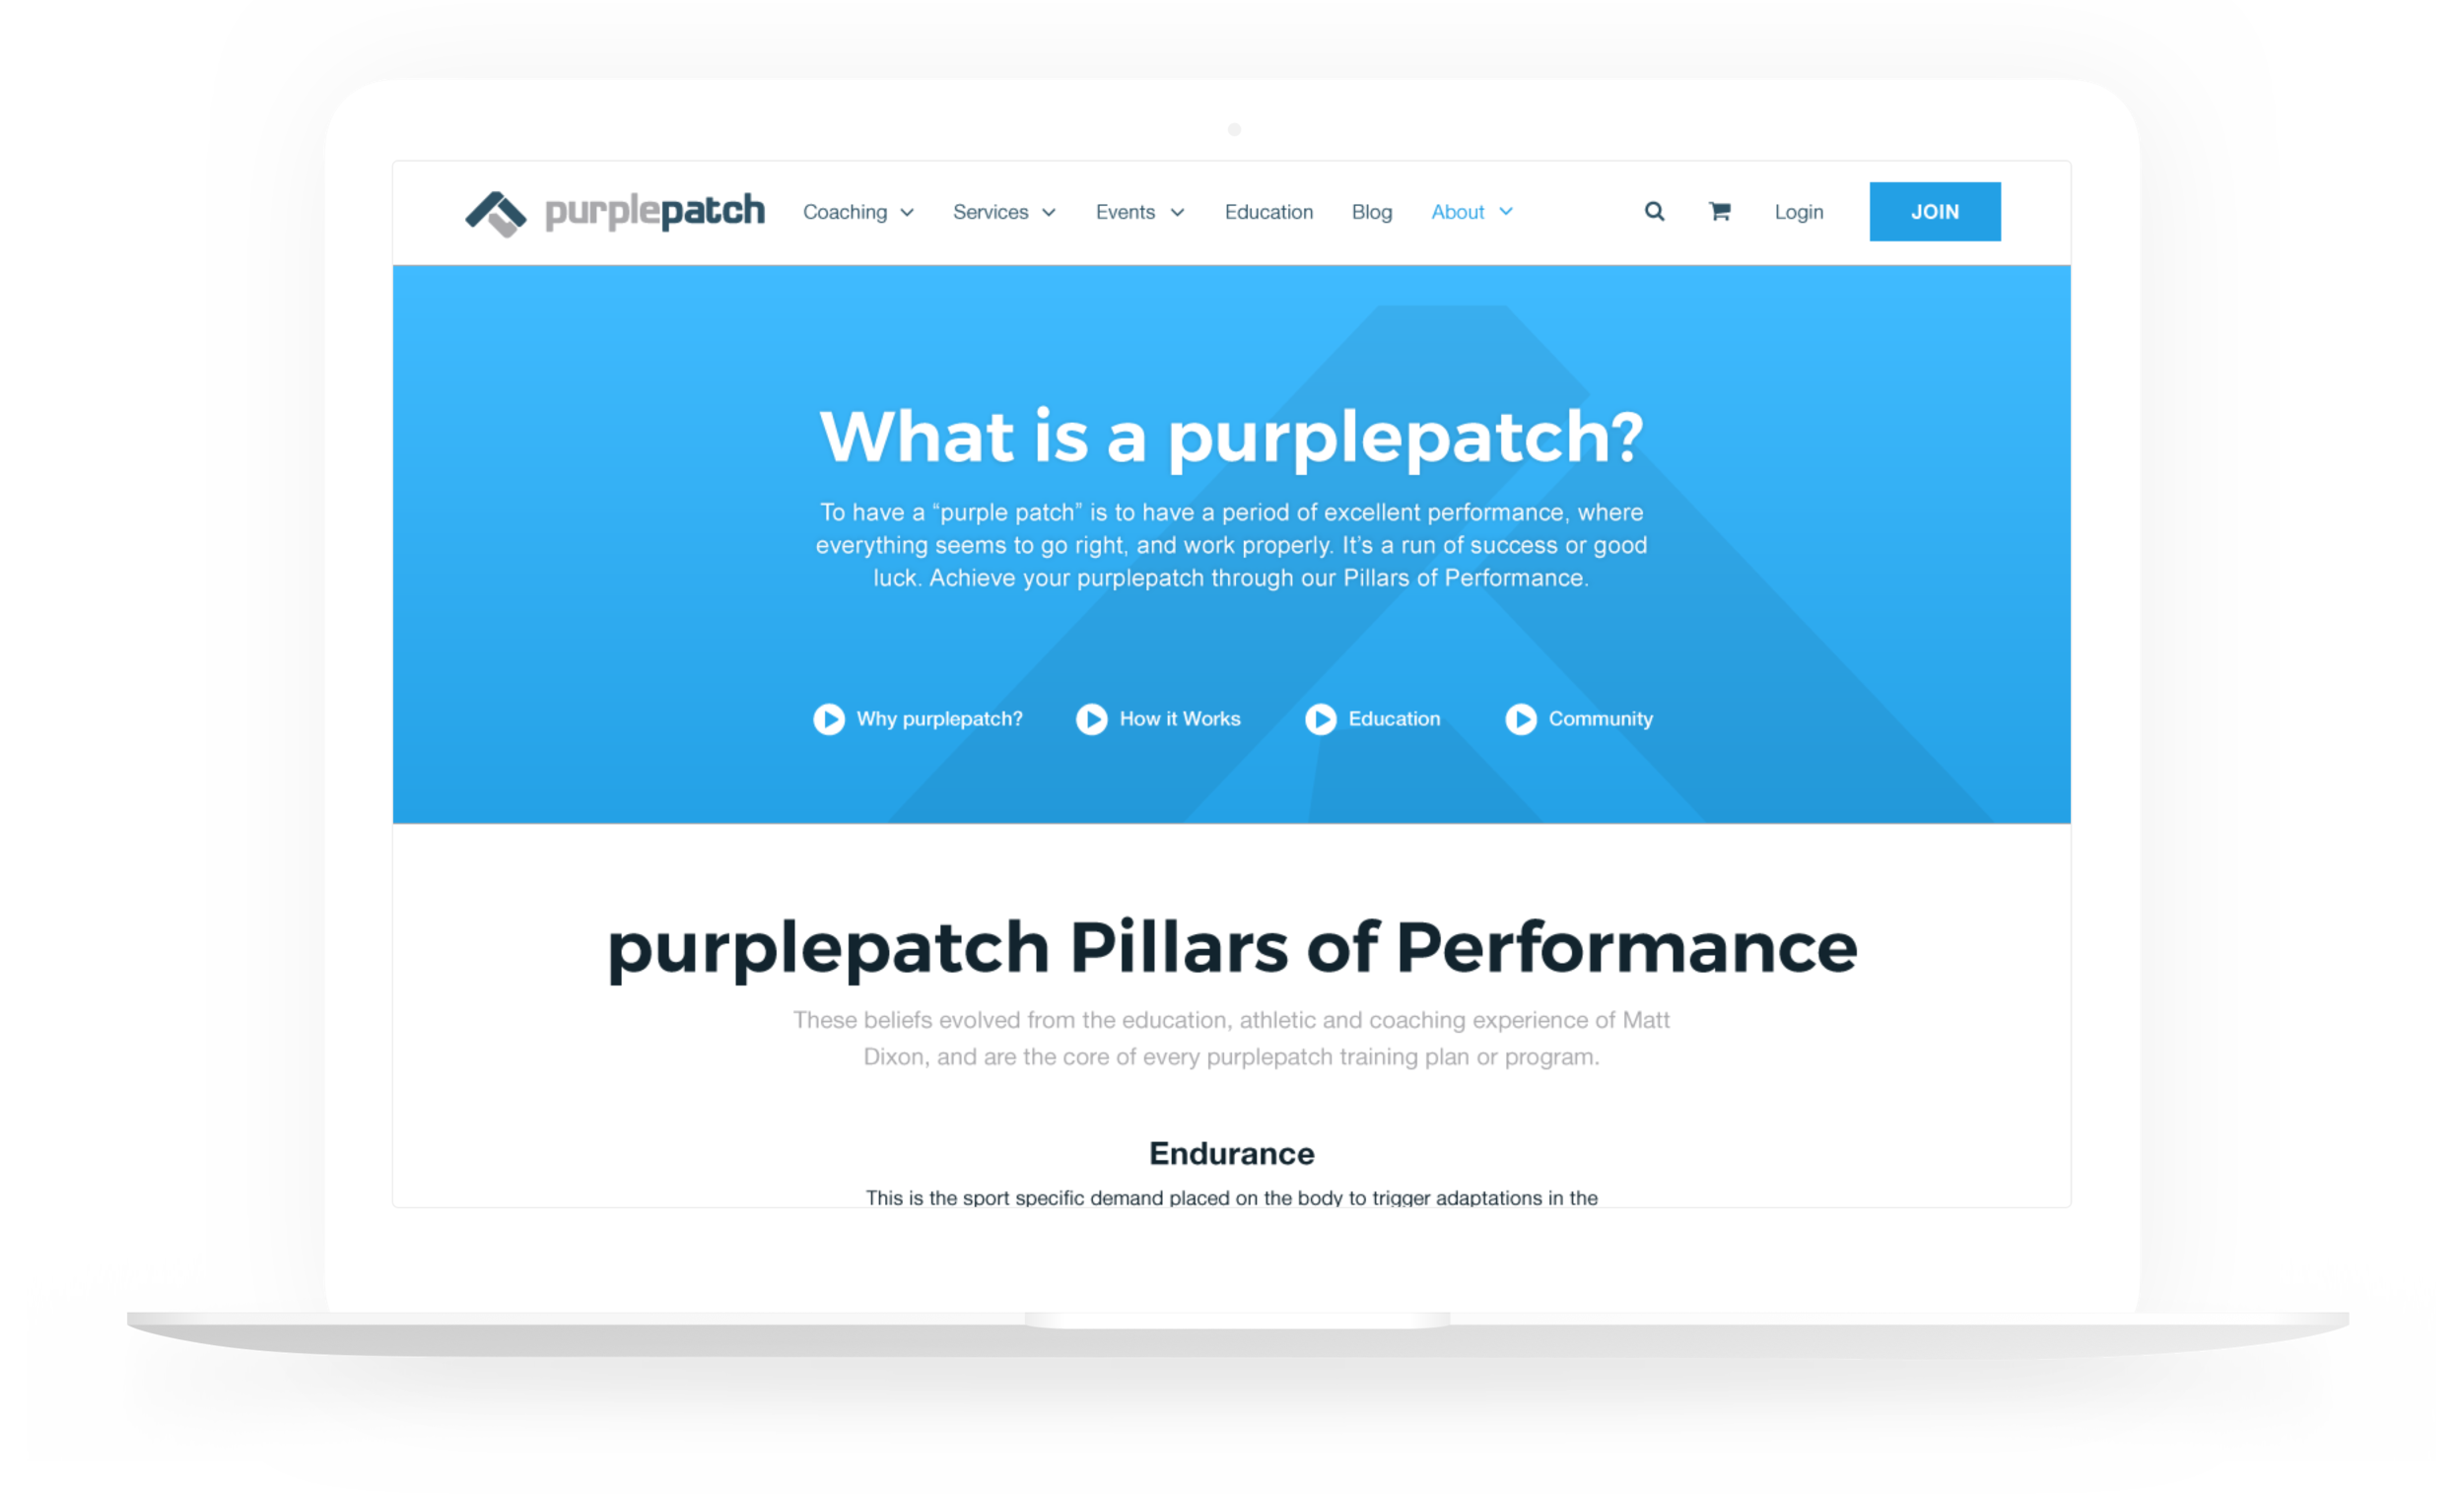 purplepatch-about@2x.png